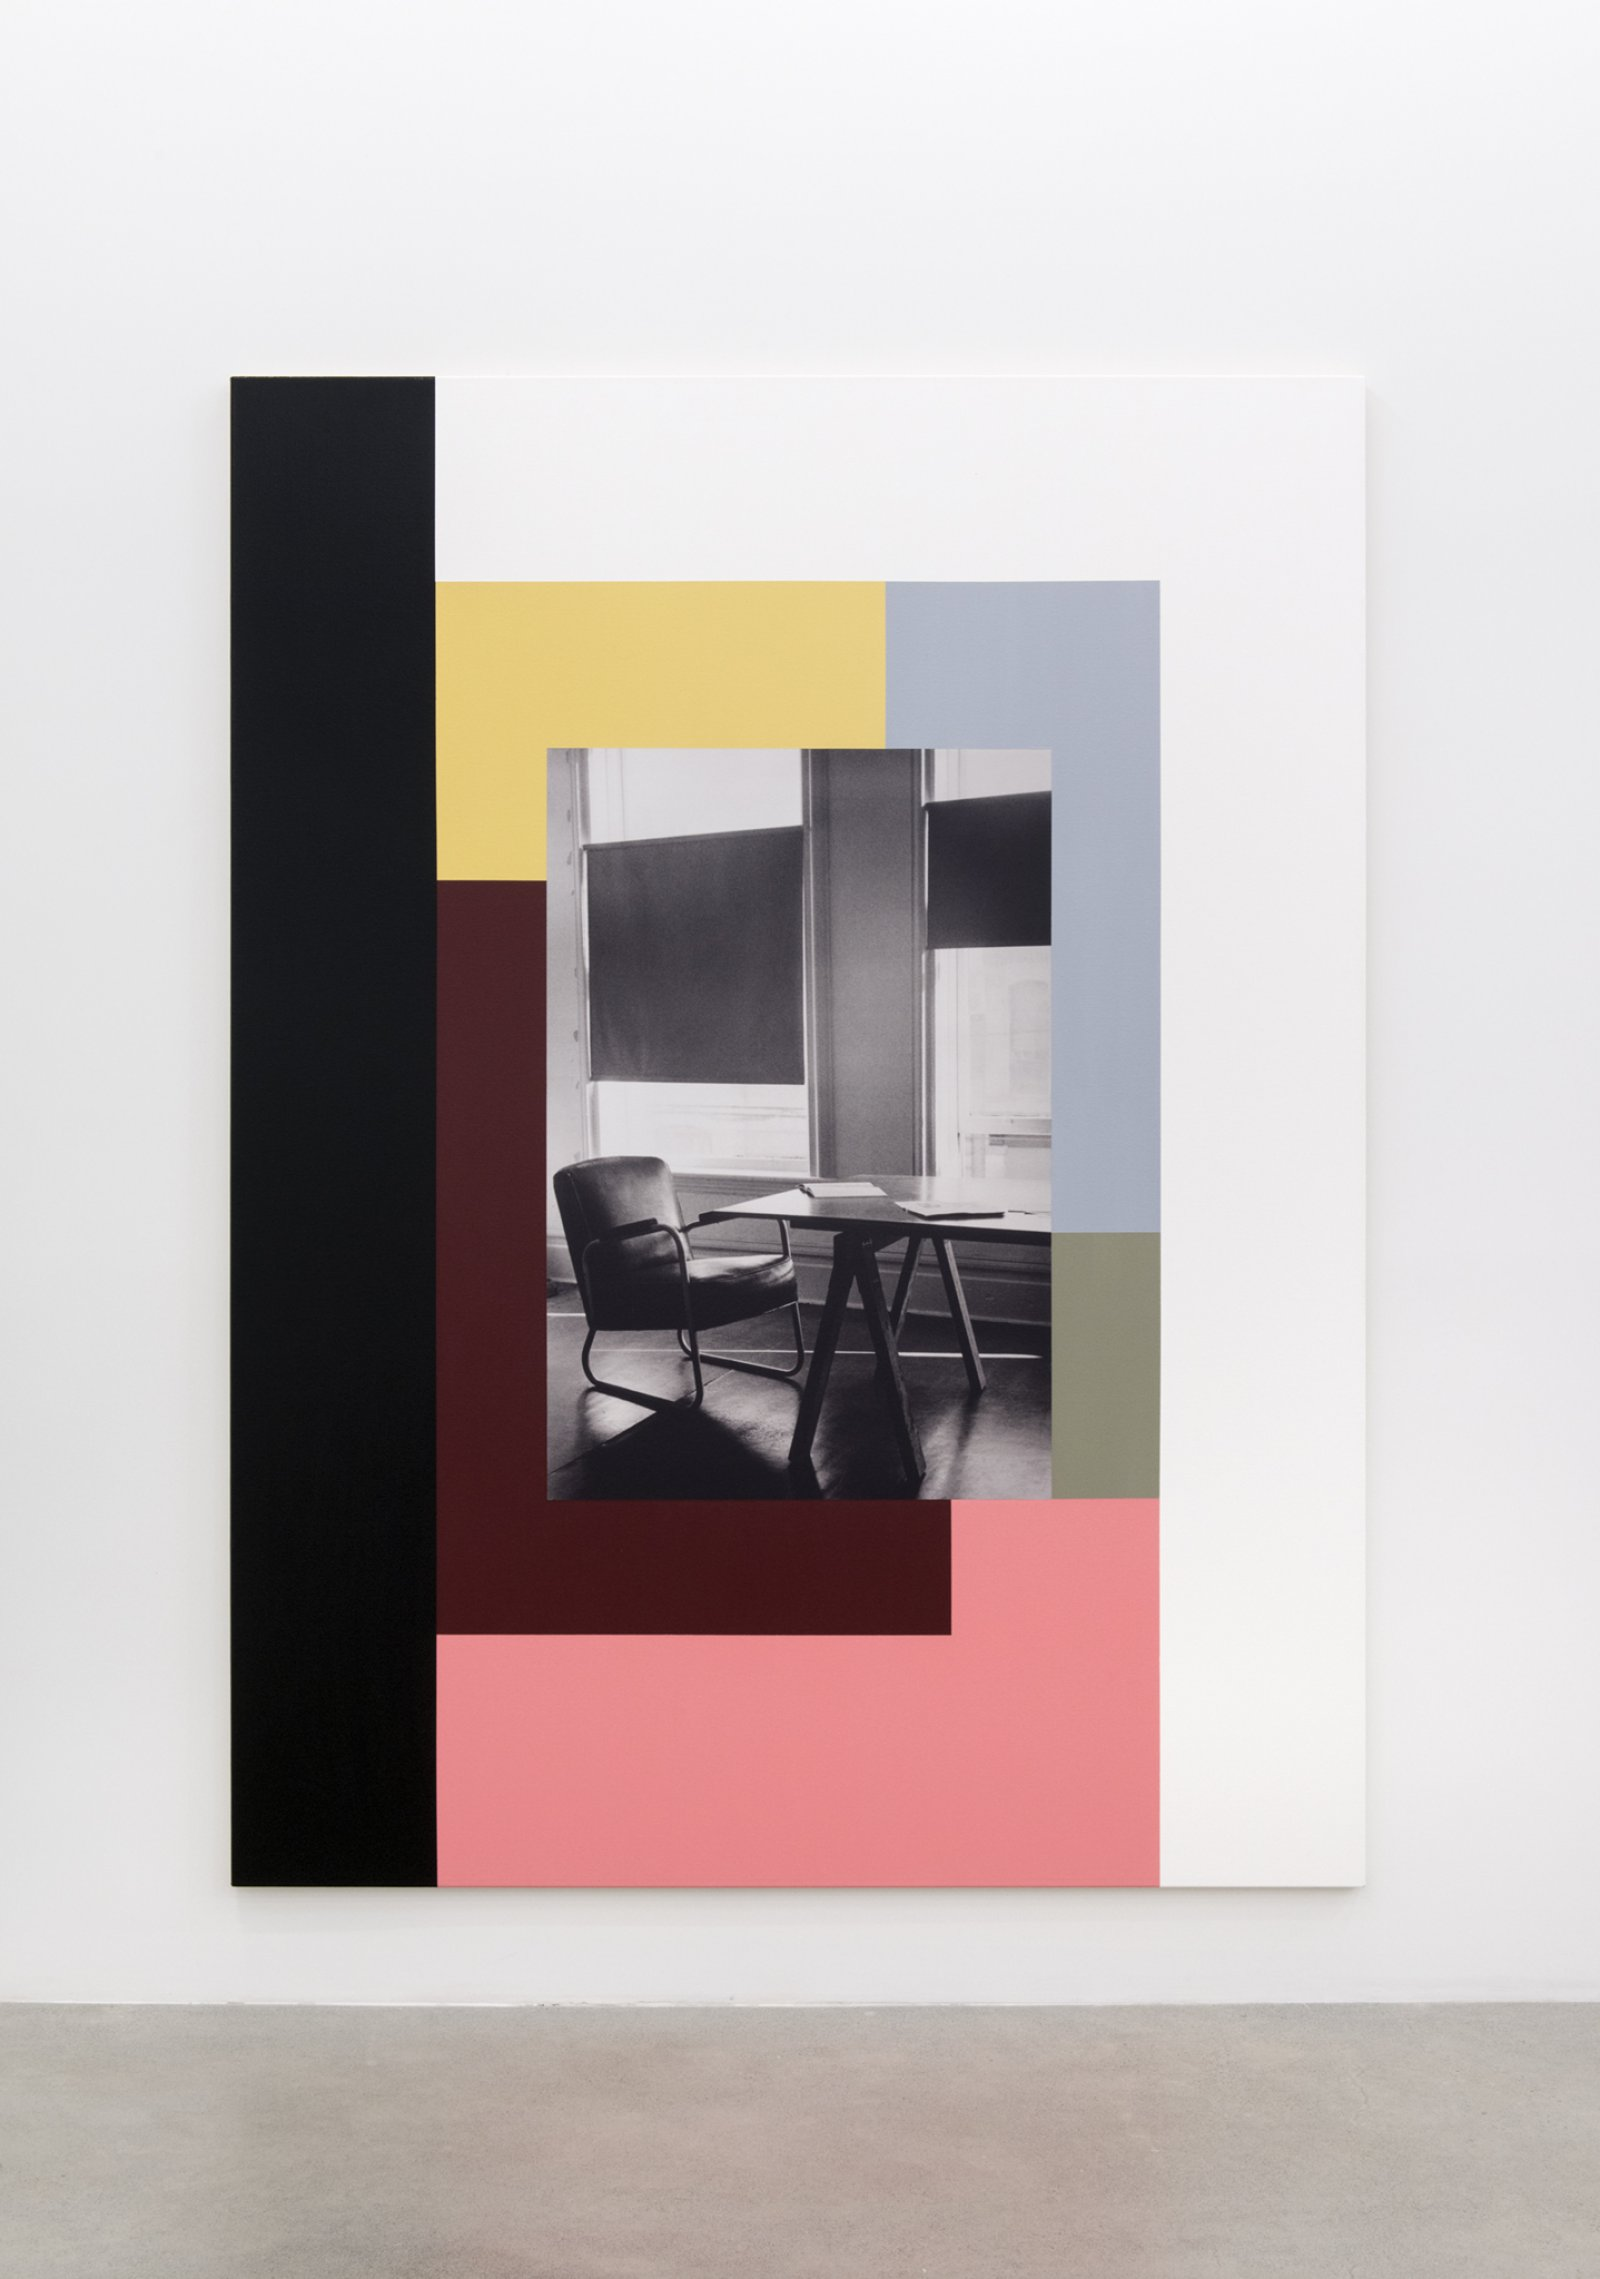 Ian Wallace, The Table (Image/Text), III, 1979–2013, photolaminate and acrylic on canvas, 96 x 72 in. (244 x 183 cm) by Ian Wallace